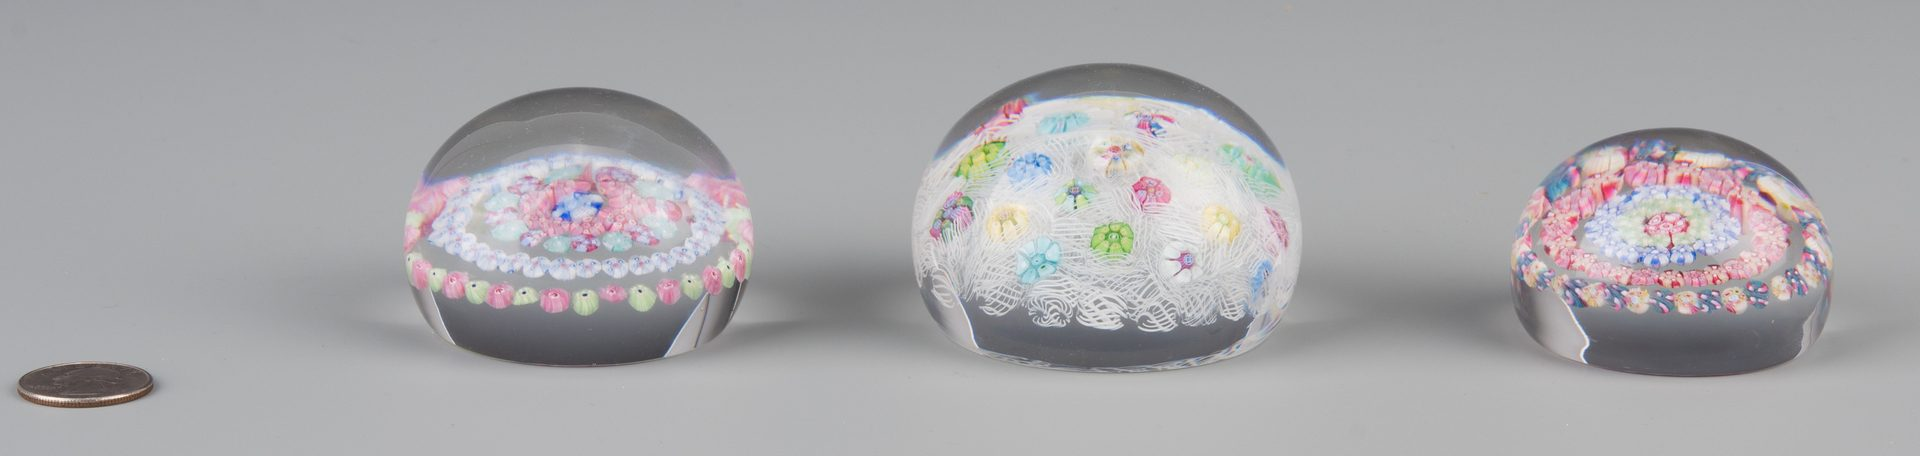 Lot 692: 3 Baccarat Millefiori Paperweights